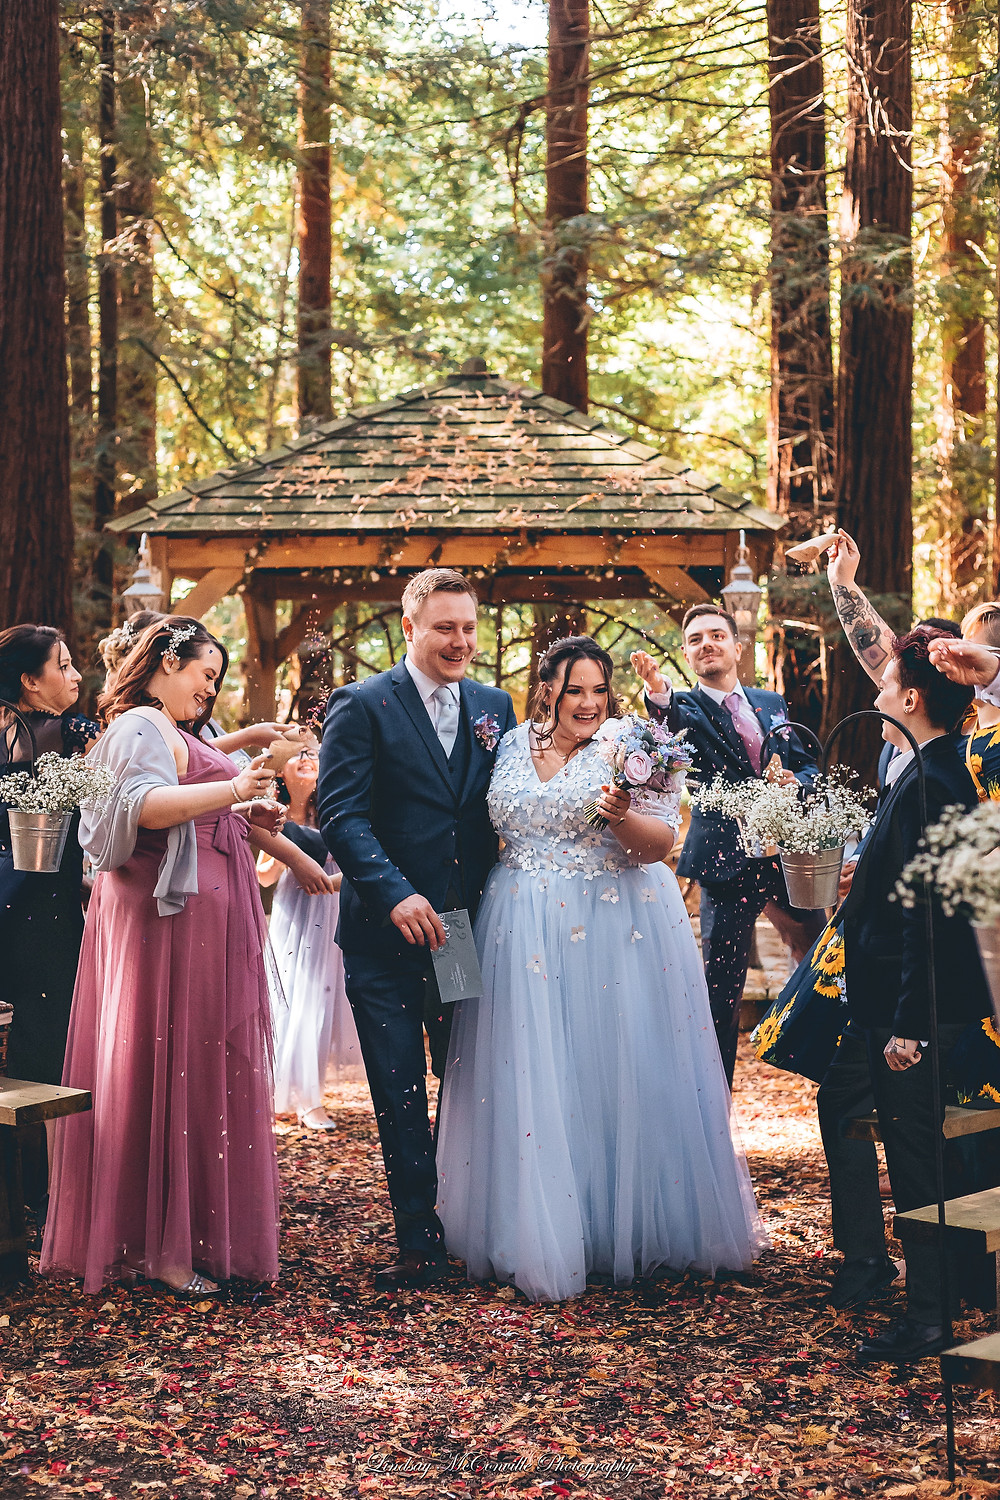 Bride in pale blue tulle and embroidered wedding dress and groom in dark suit walking through confetti thrown by bridesmaids and guests after their outdoor woodland wedding.  Tanya Jones Perfect Promises Sussex Celebrant, Surrey Celebrant, London Celebrant, UK Celebrant